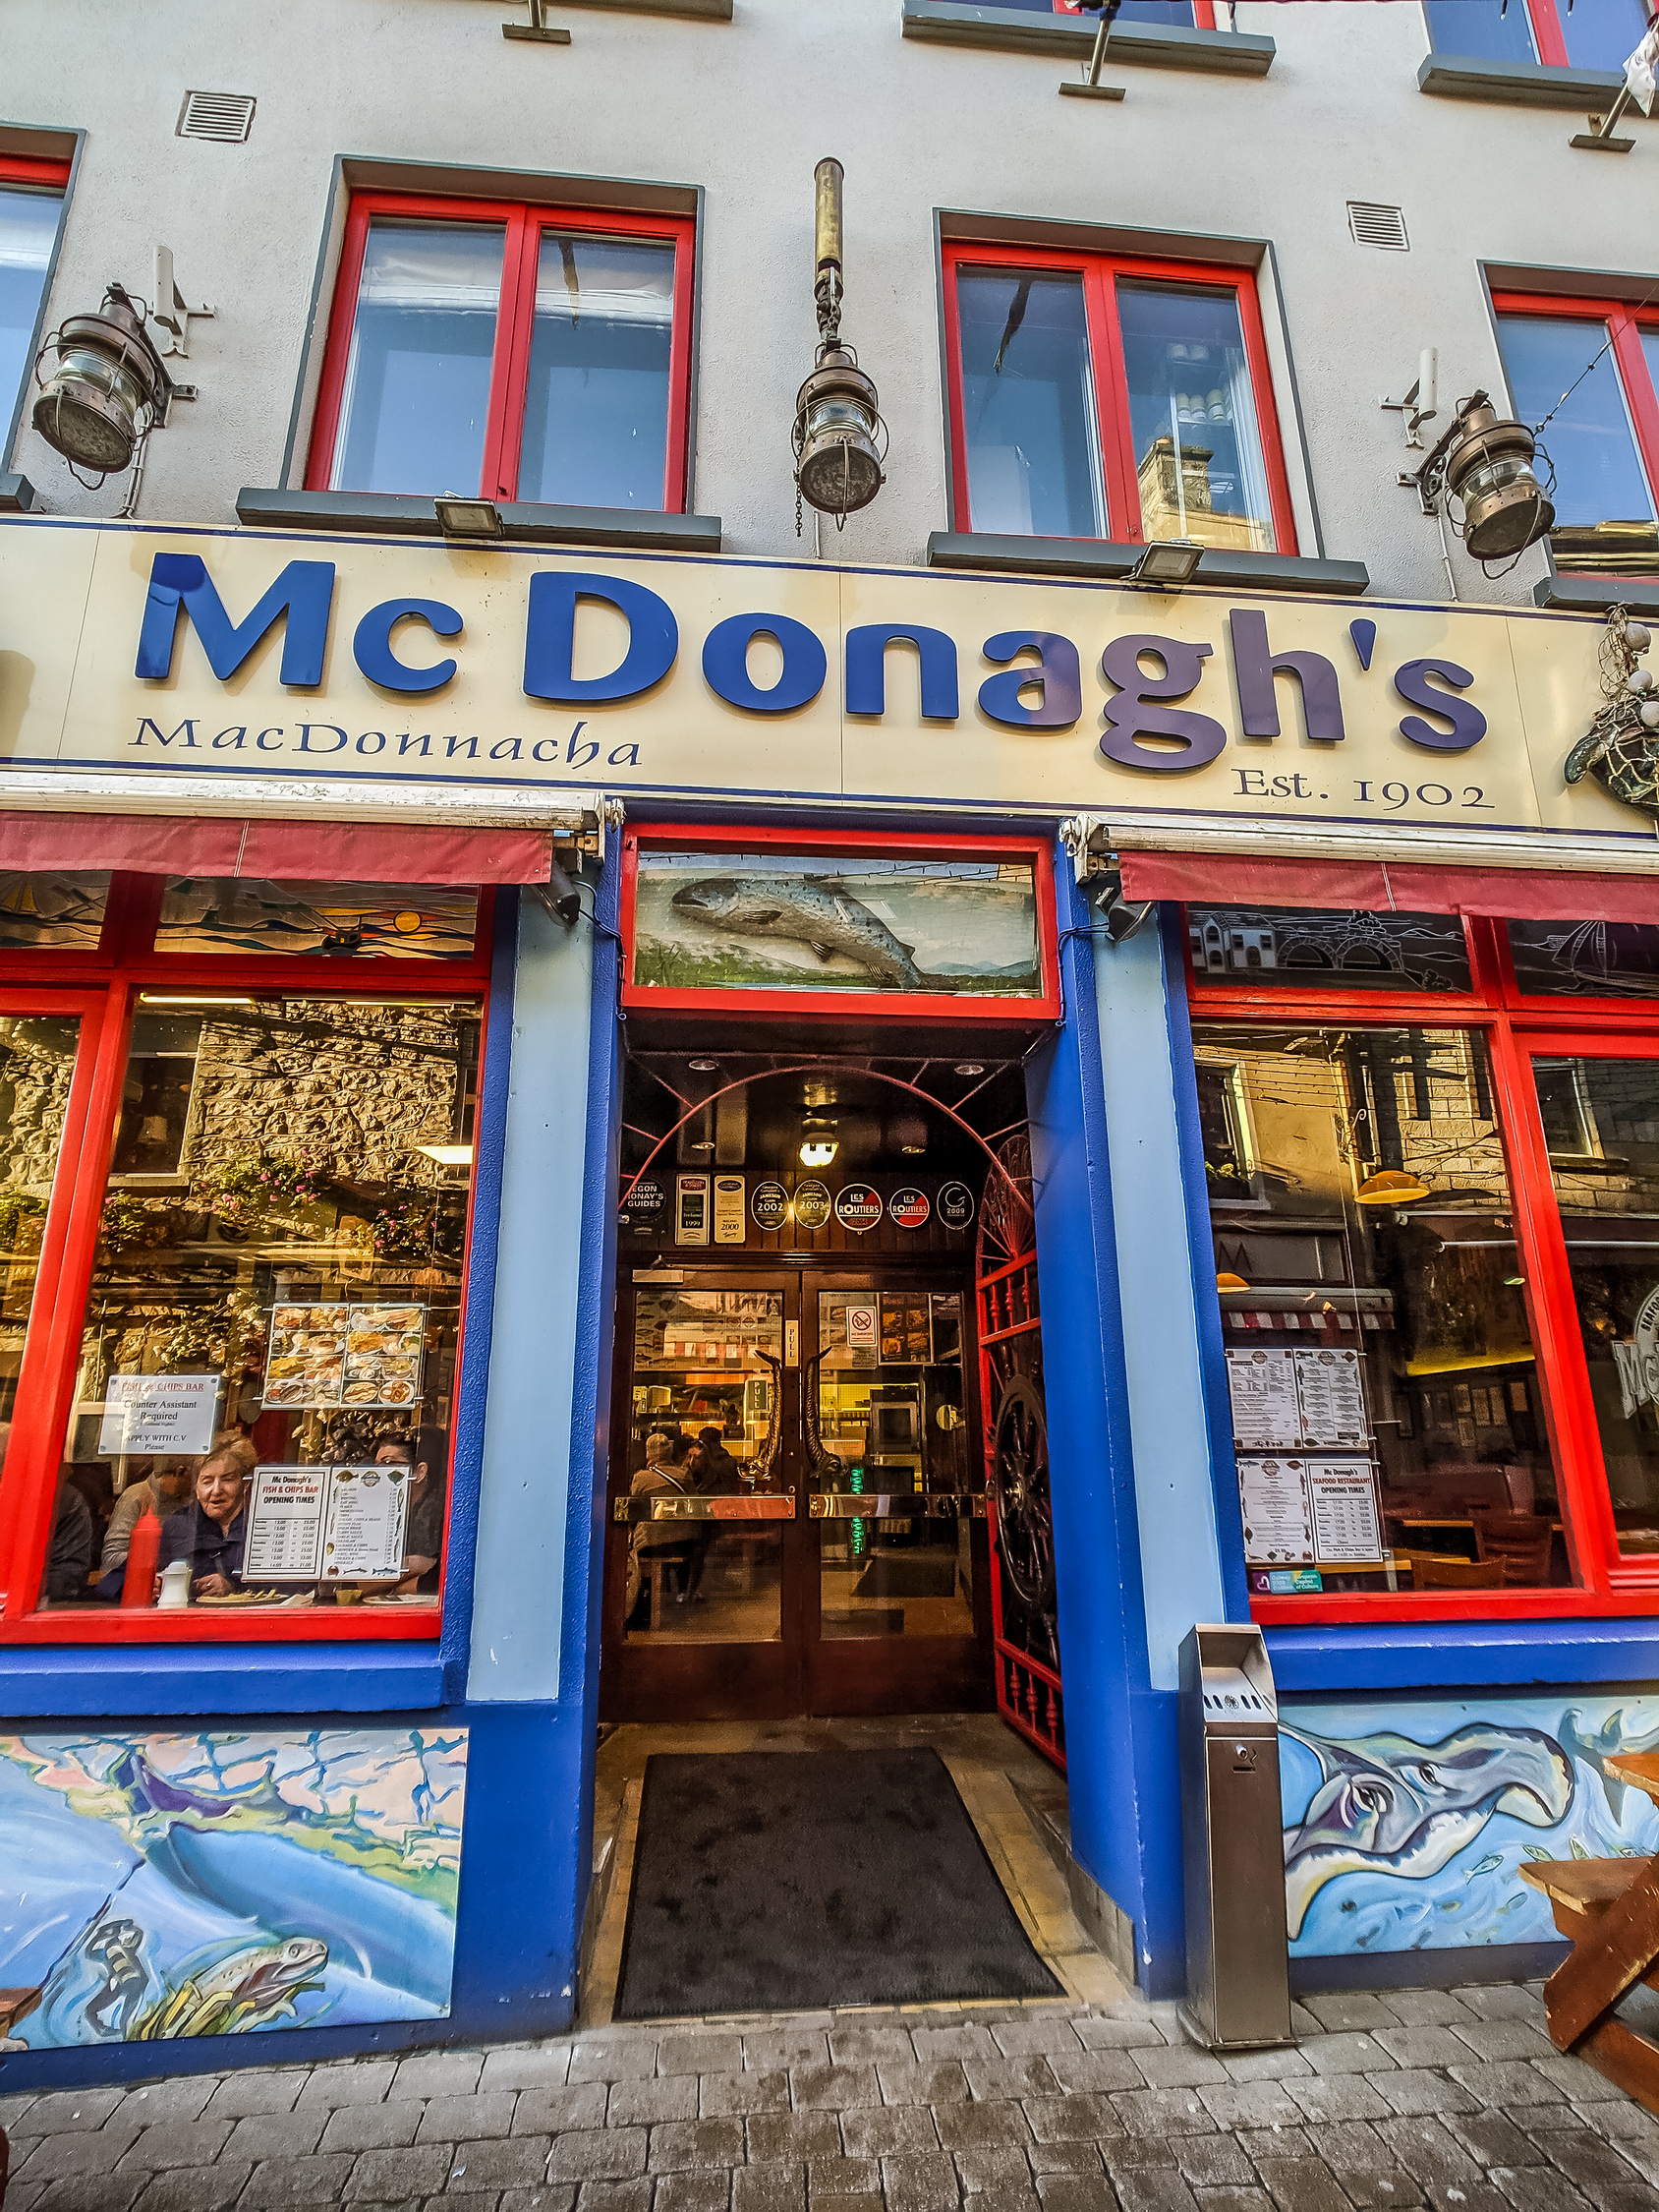 McDonagh's exterior, it is considered to be one of the best seafood restaurants in Galway Ireland.